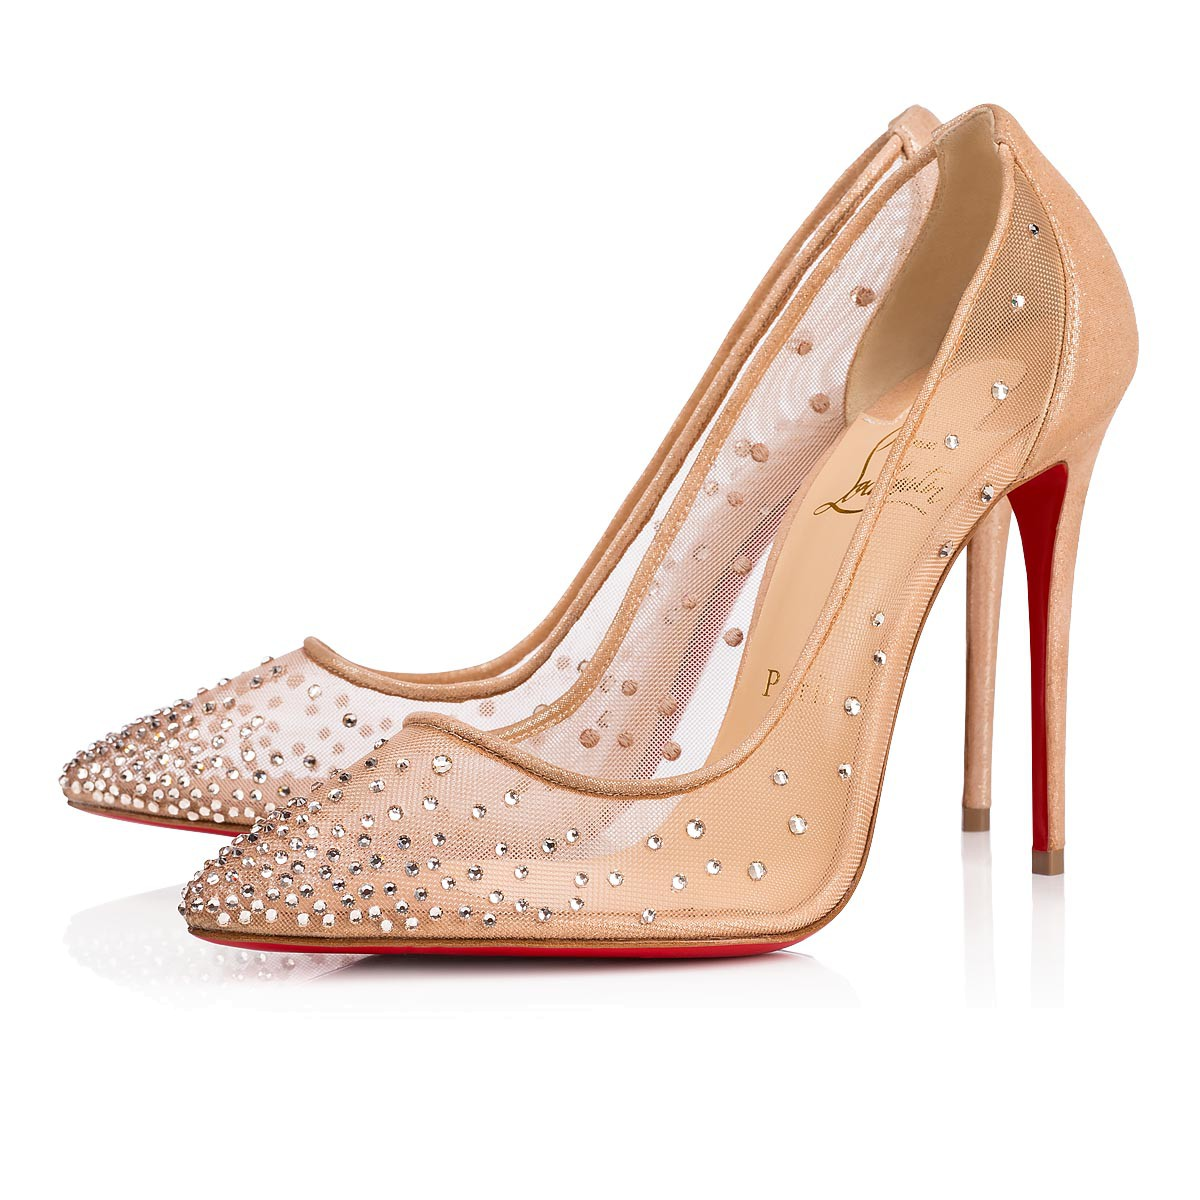 326104a8b9f6 Christian Louboutin Follies Spikes 100mm Heels – approx. R17